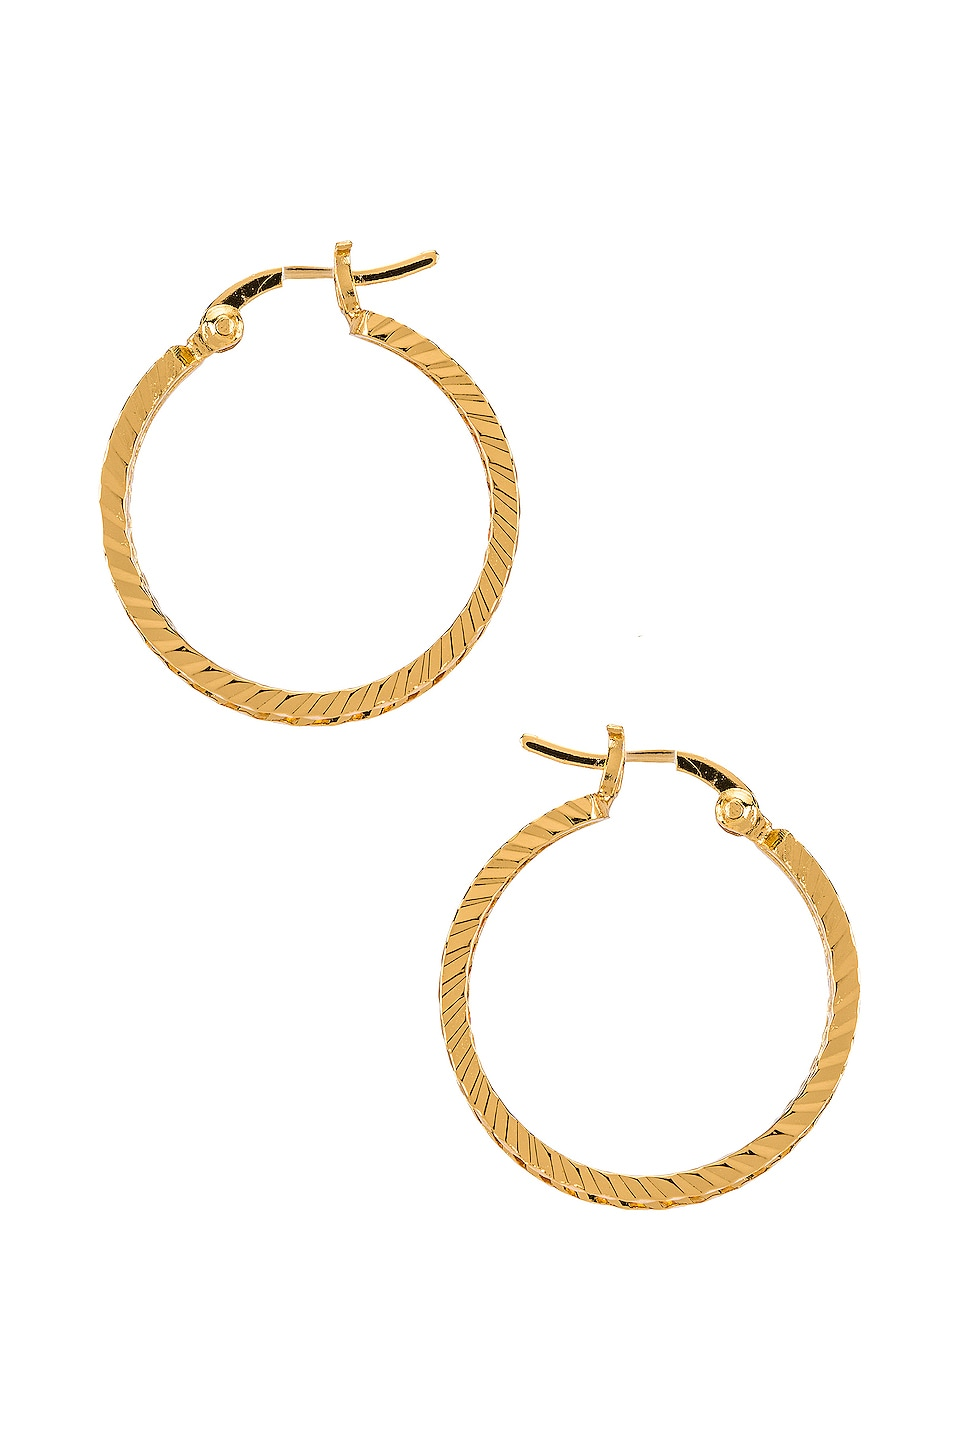 The M Jewelers NY The Rope Hoops in Gold